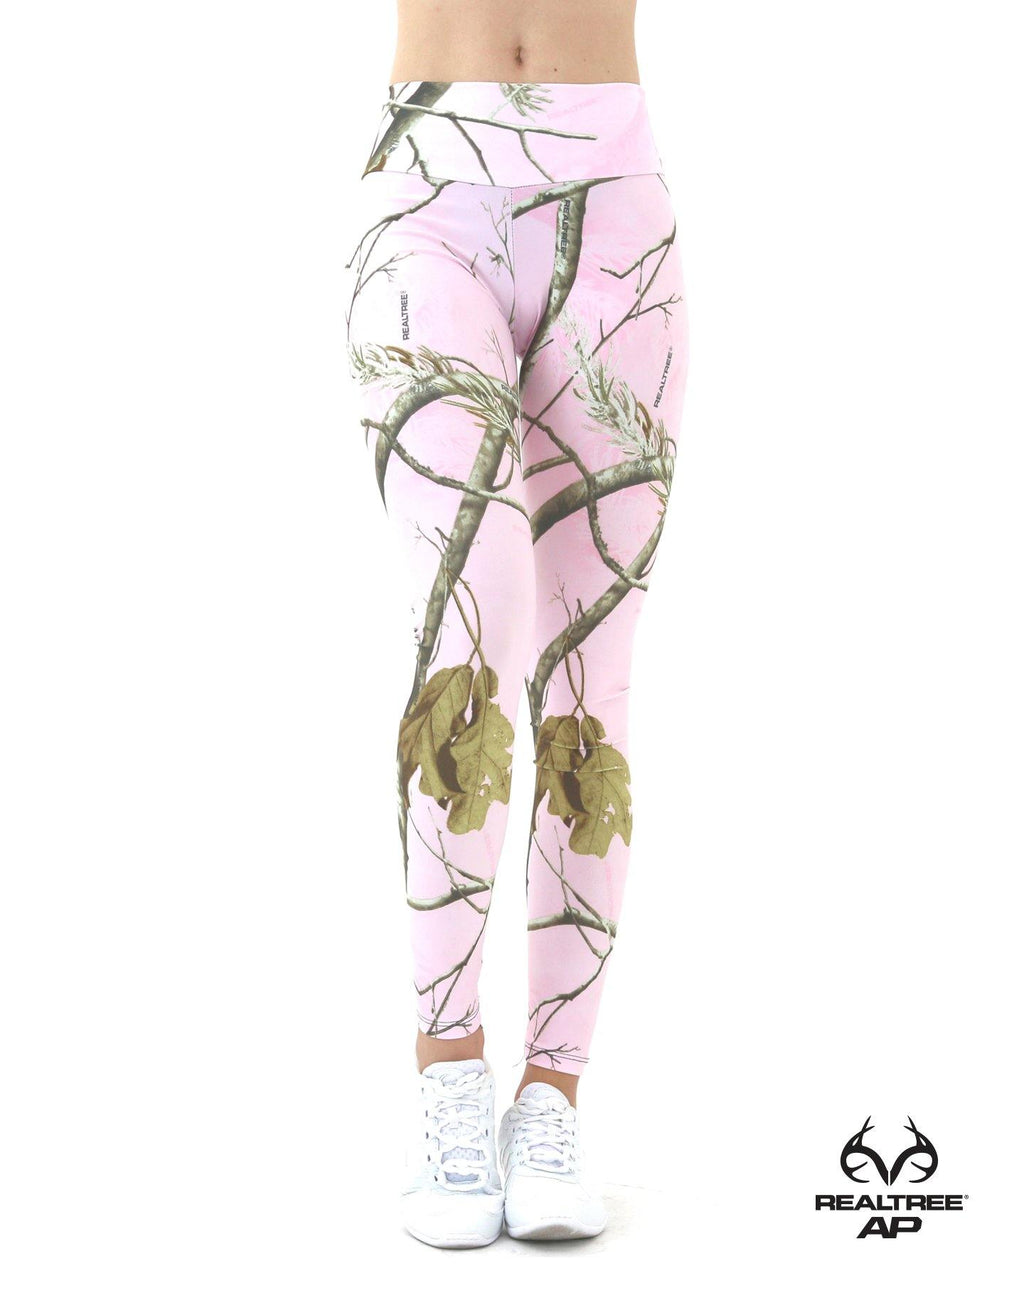 Apsara Leggings Low Waist Full Length, Realtree AP Pink